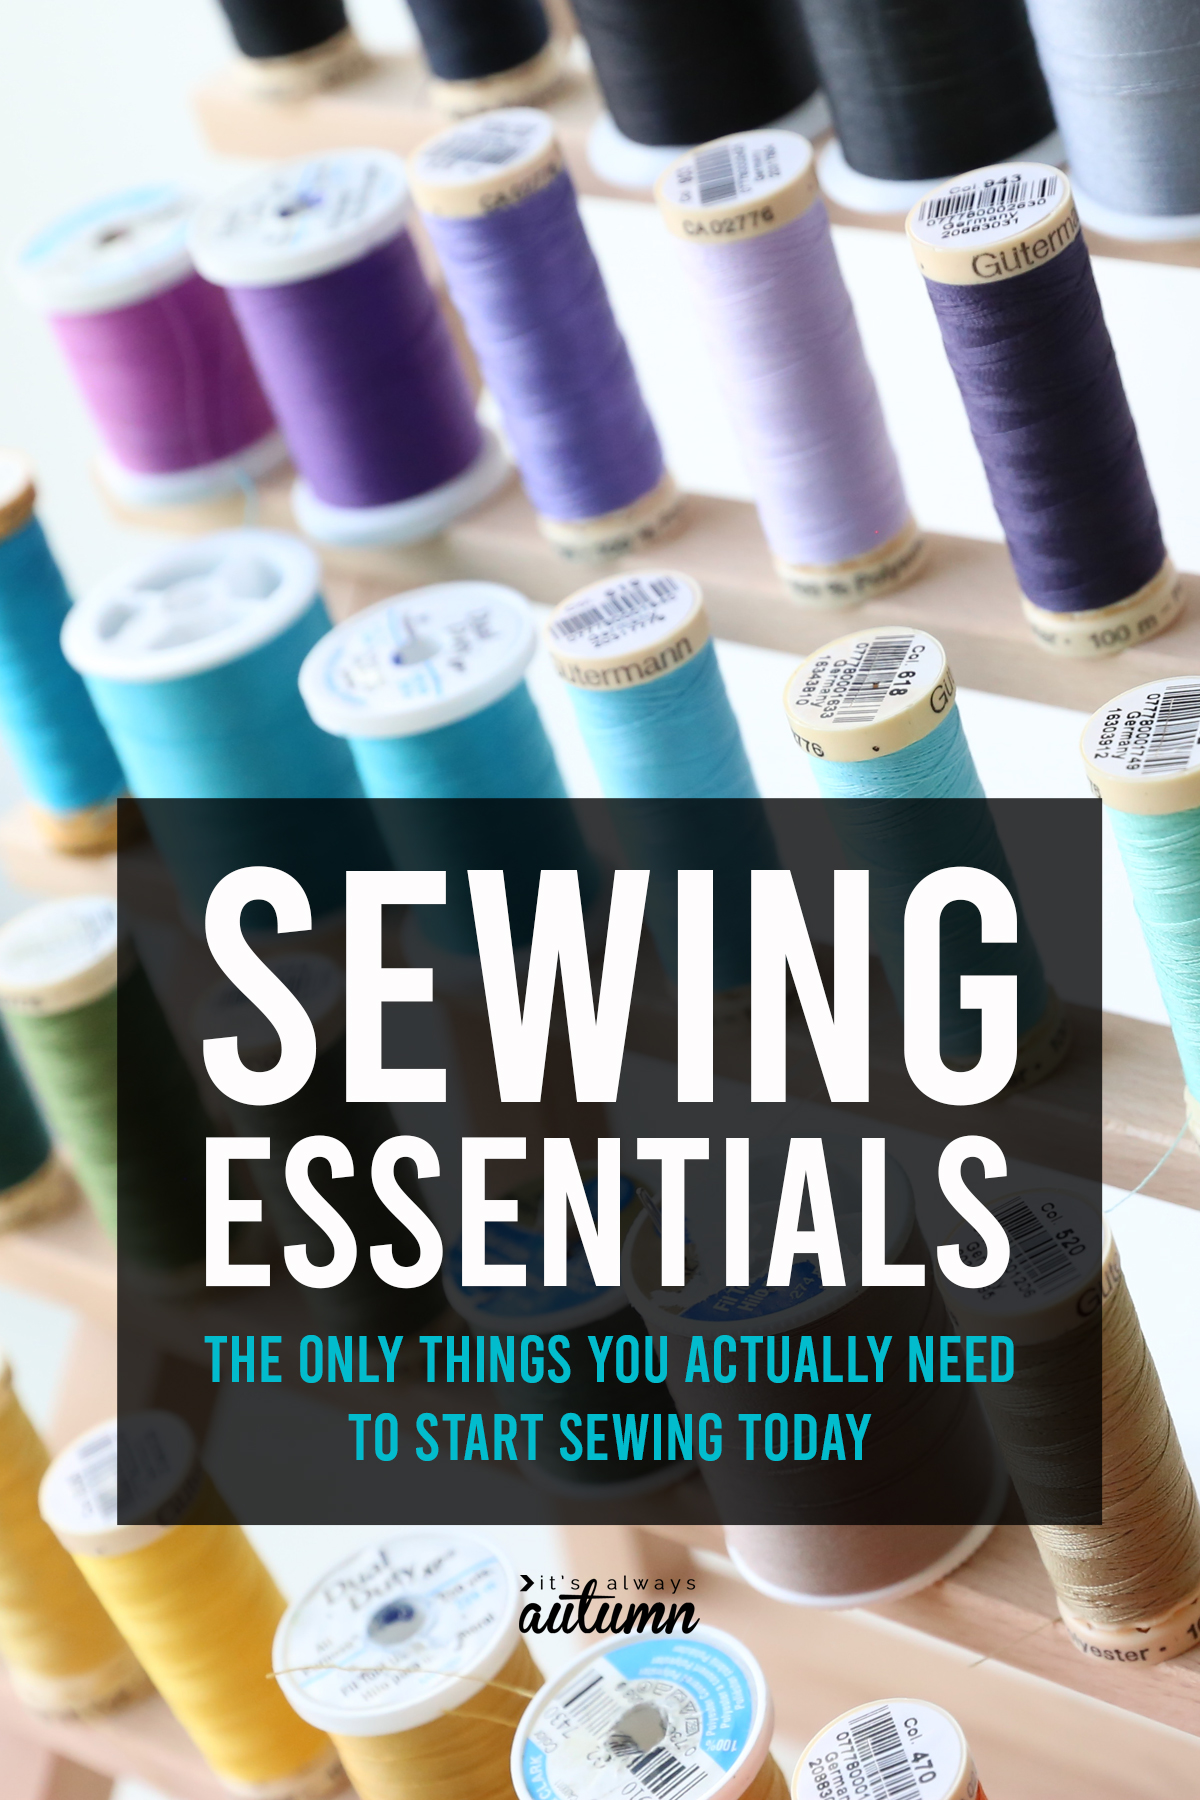 You DON'T need a huge amount of supplies to start sewing - just these sewing essentials.